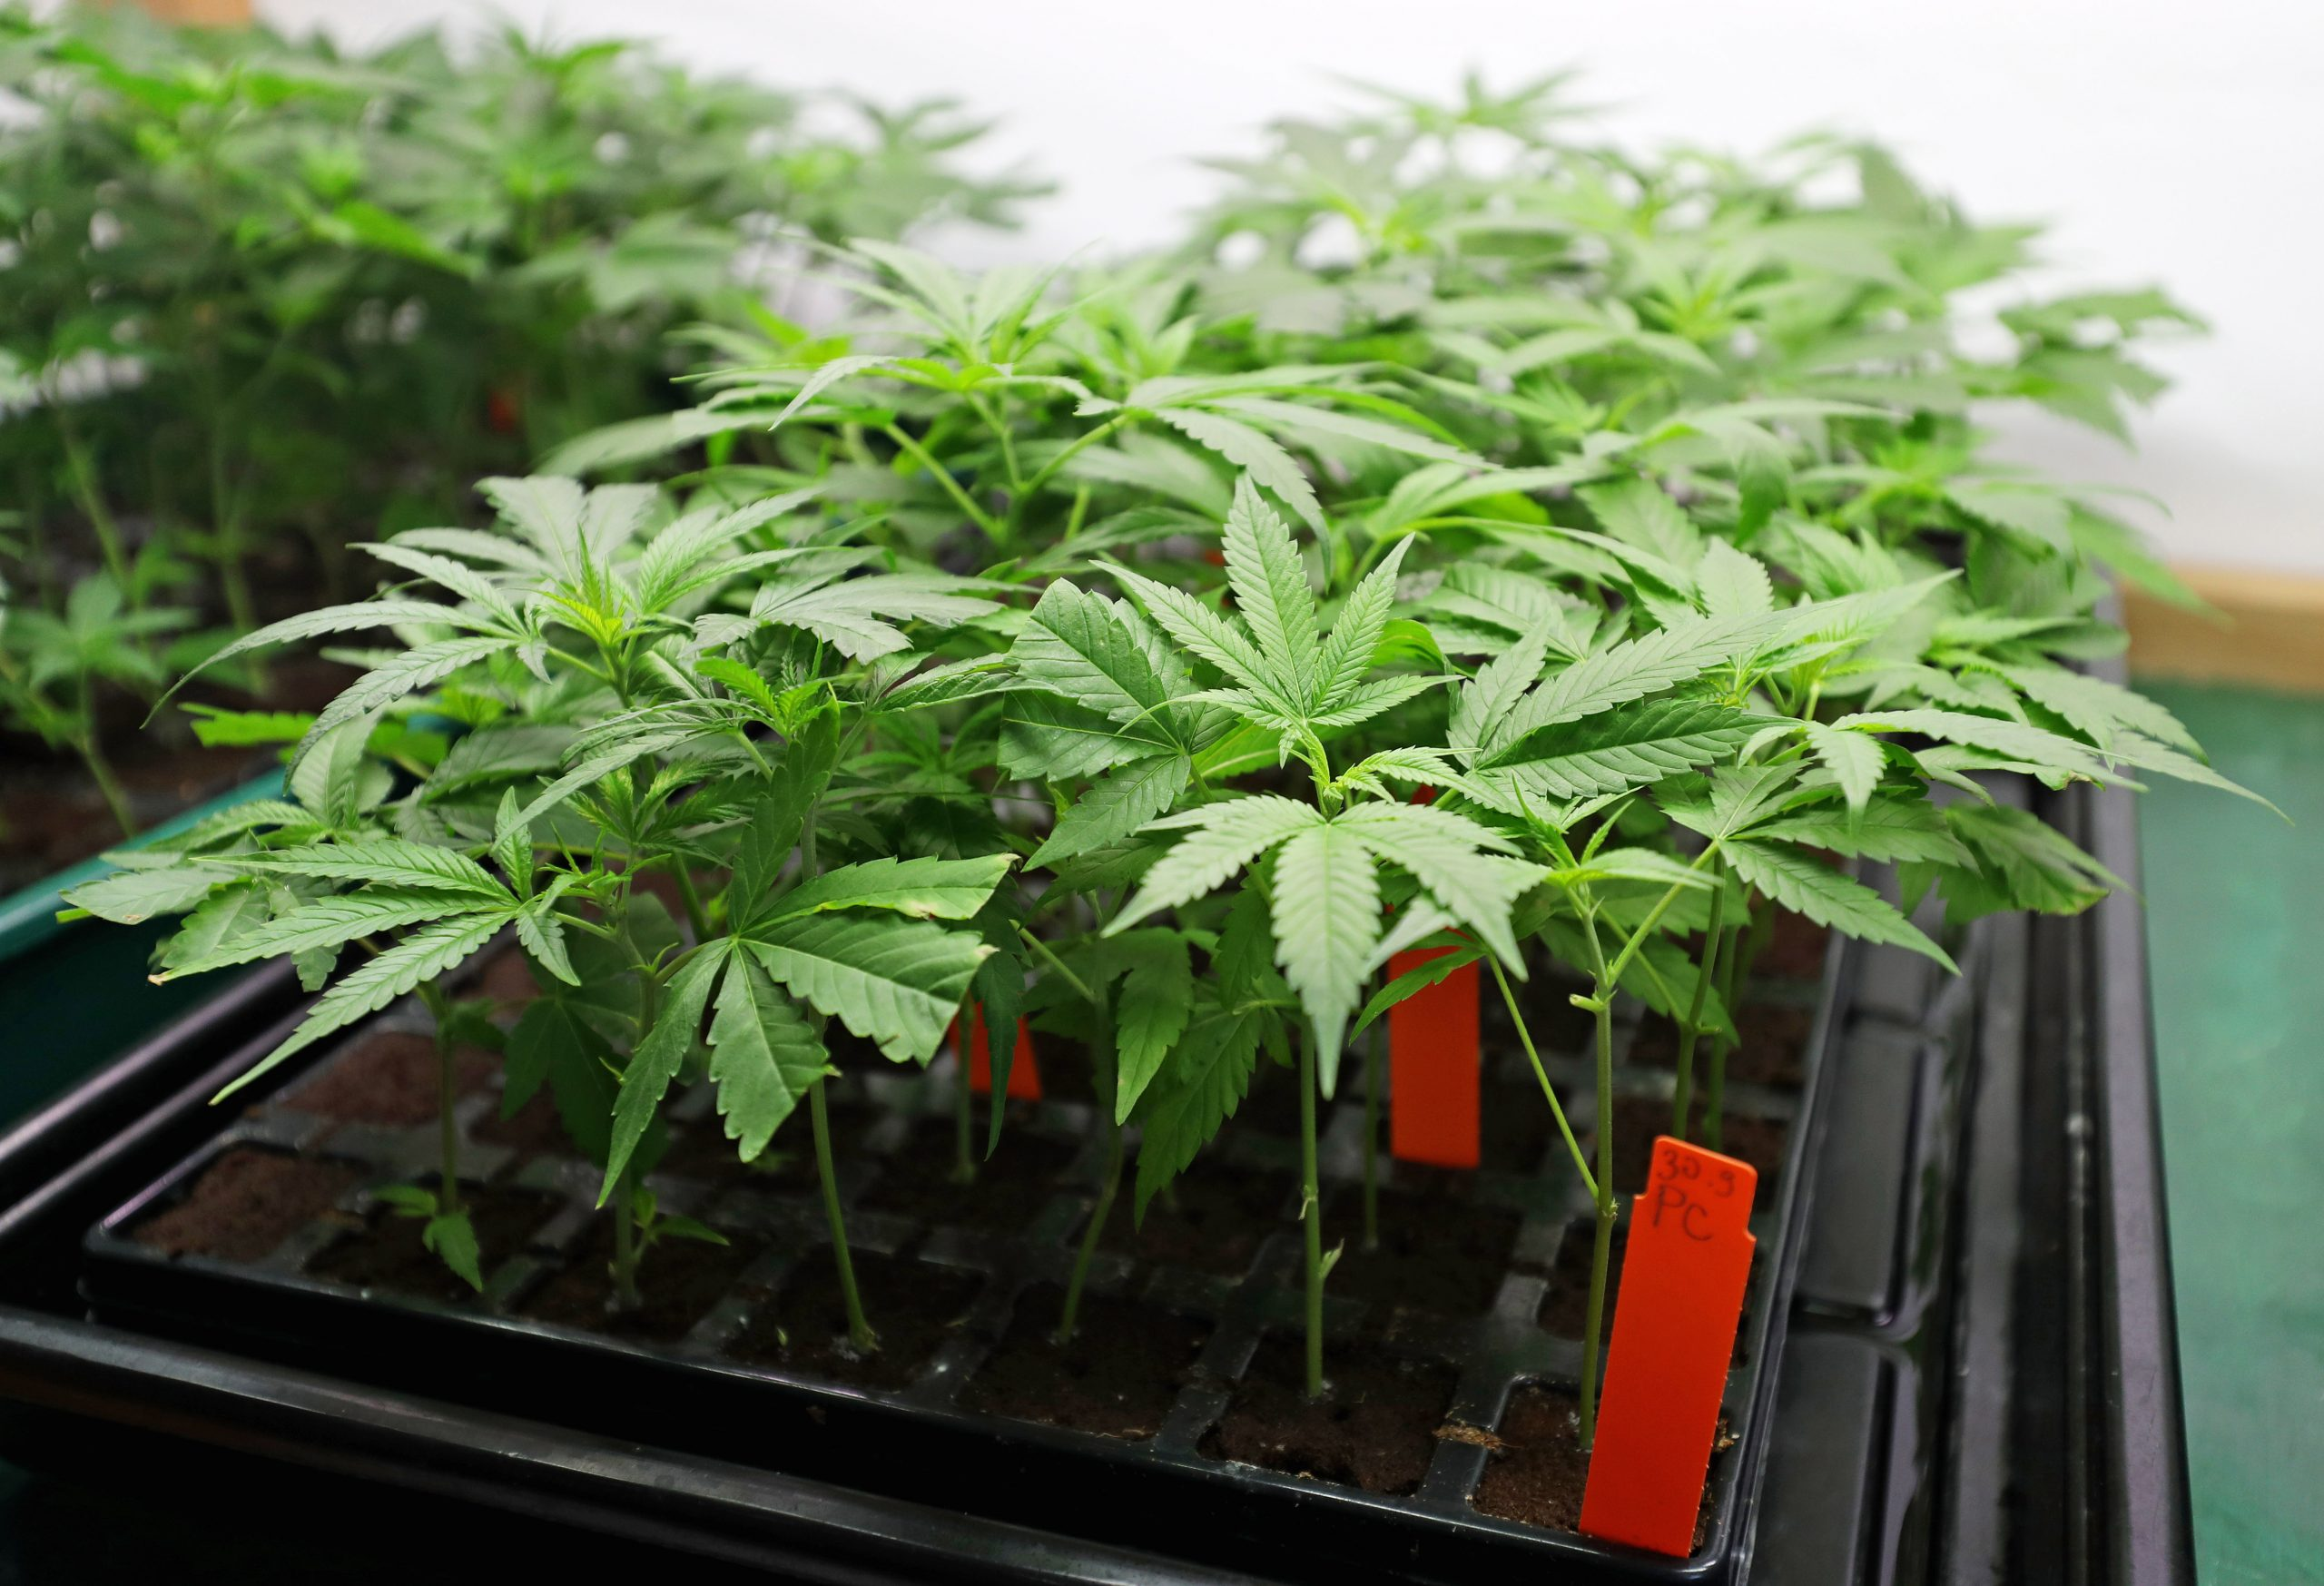 Cannabis plants being grown in small amounts potentially in a home grow op